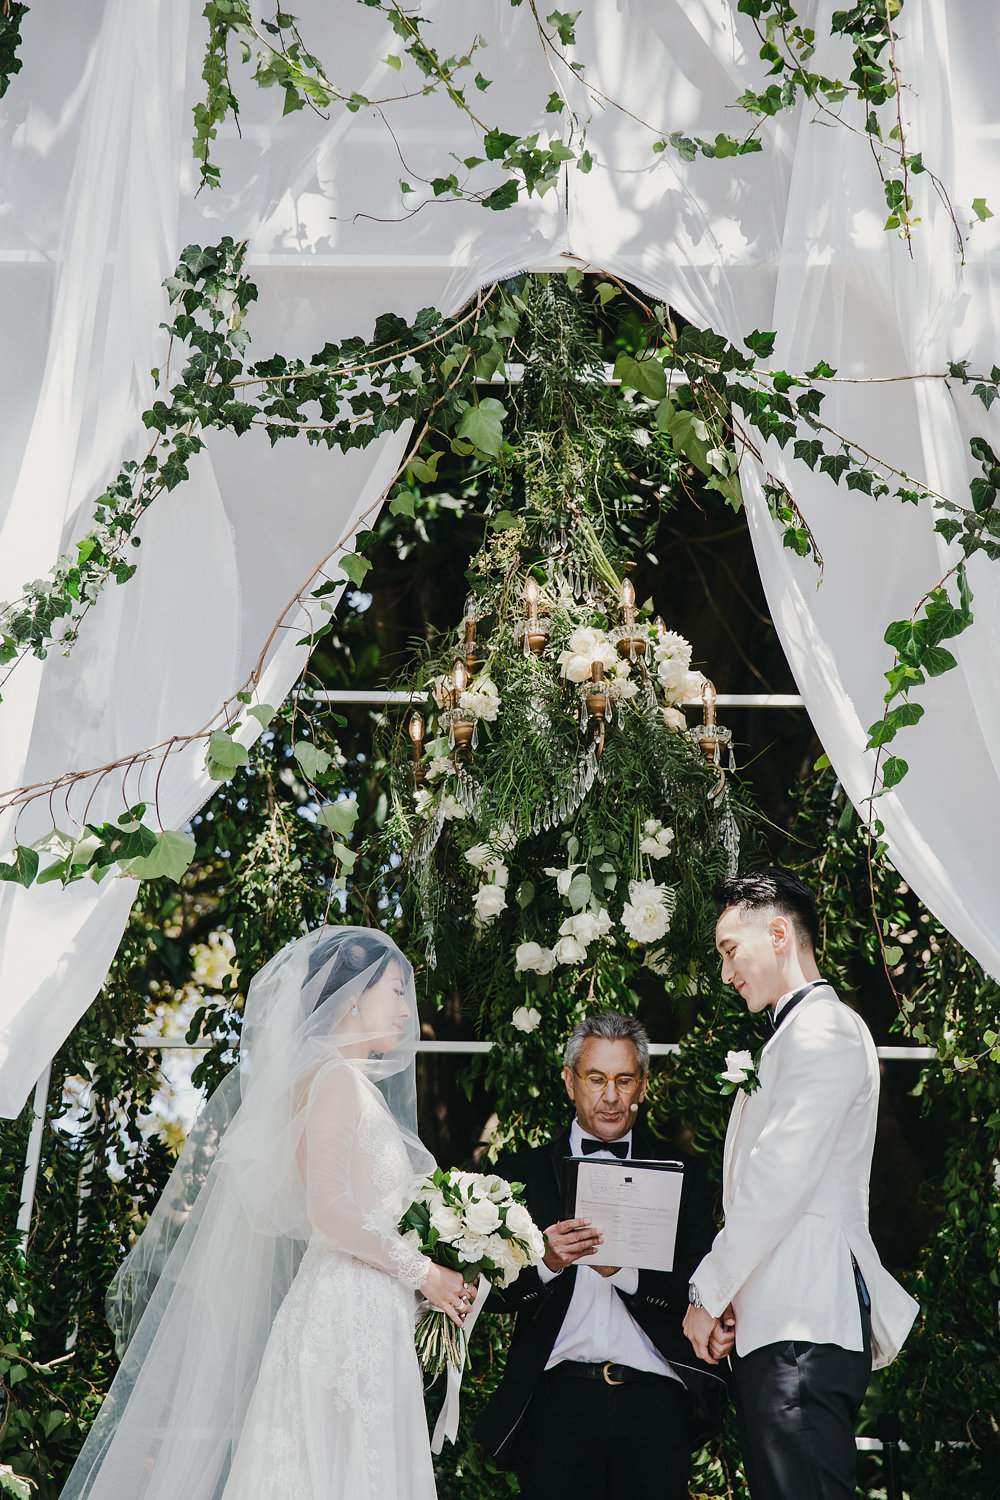 secret garden wedding ceremony - photo by Lara Hotz http://ruffledblog.com/secret-garden-inspired-australian-wedding